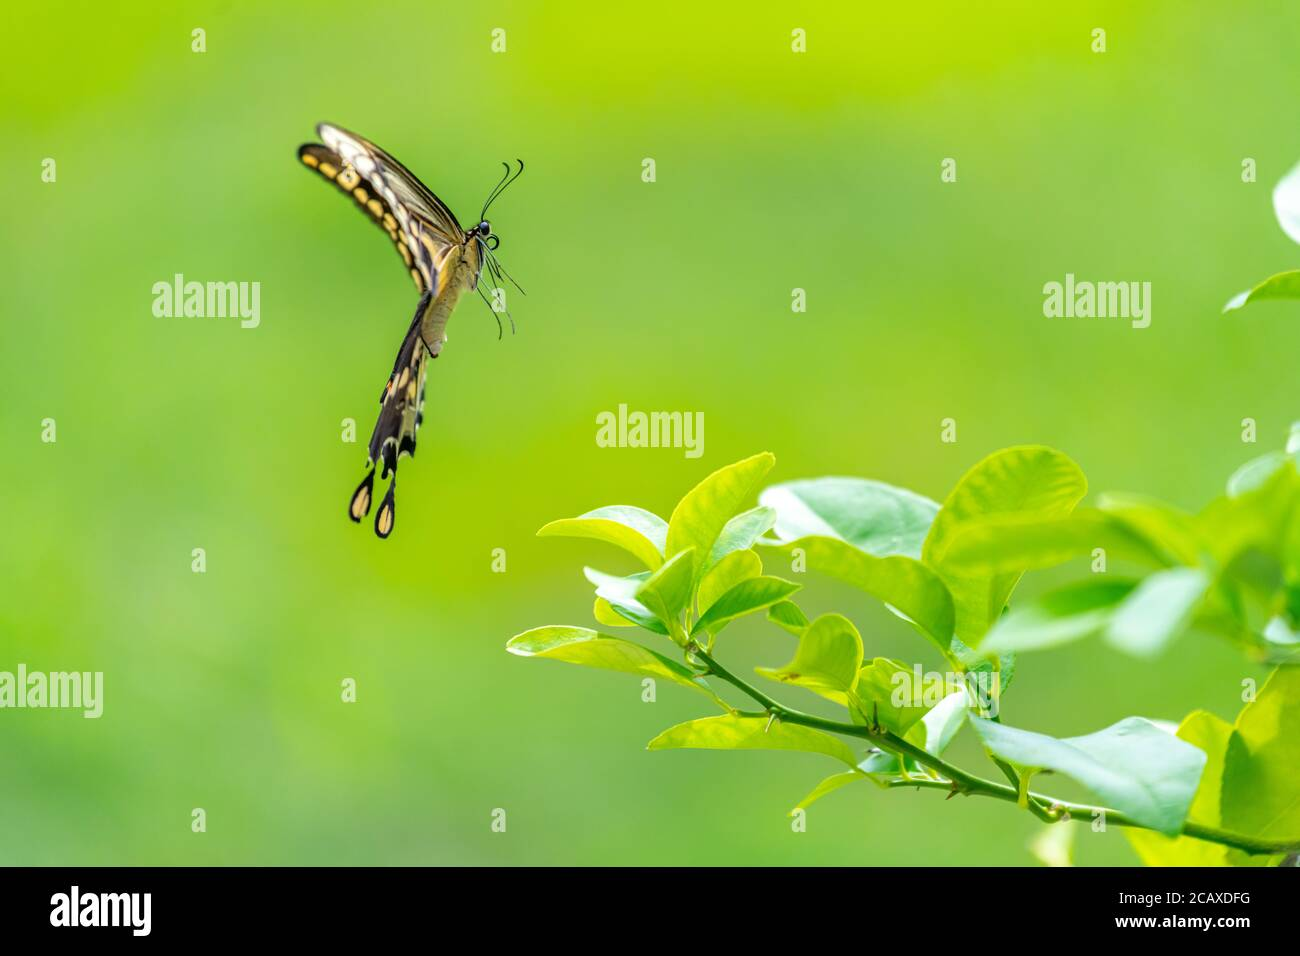 Side view of a Female Eastern Giant Swallowtail (Papilio cresphontes) in flight. Stock Photo